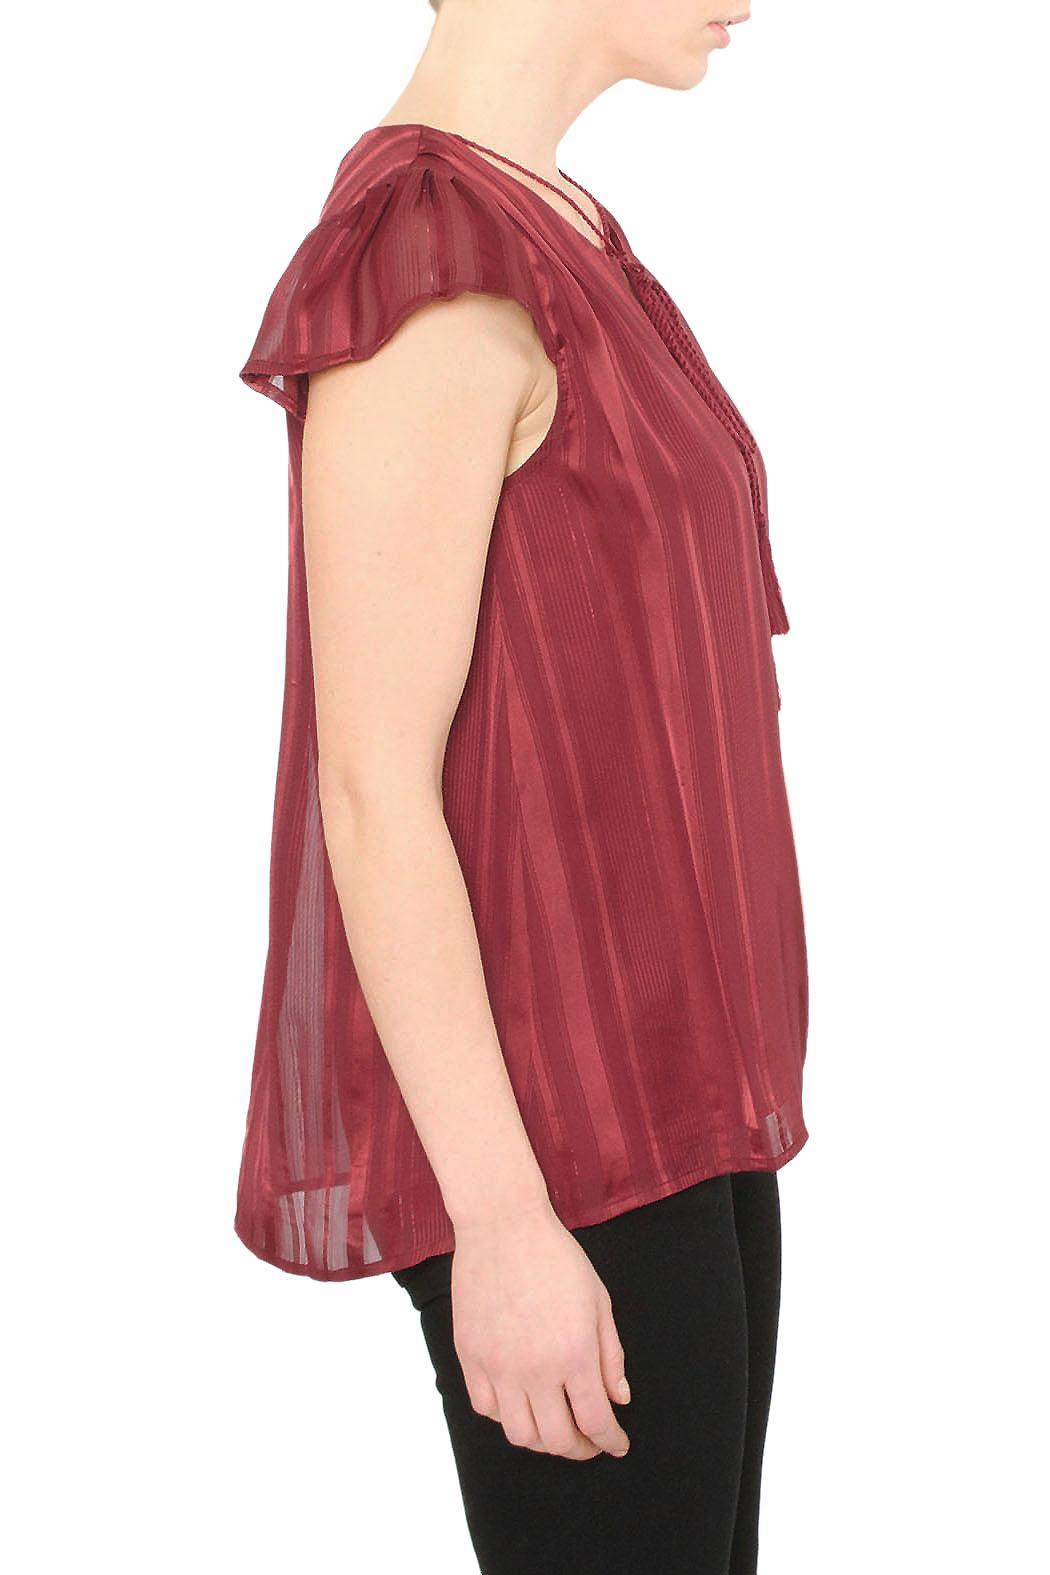 J.O.A. Burgundy Red Blouse - Front Full Image